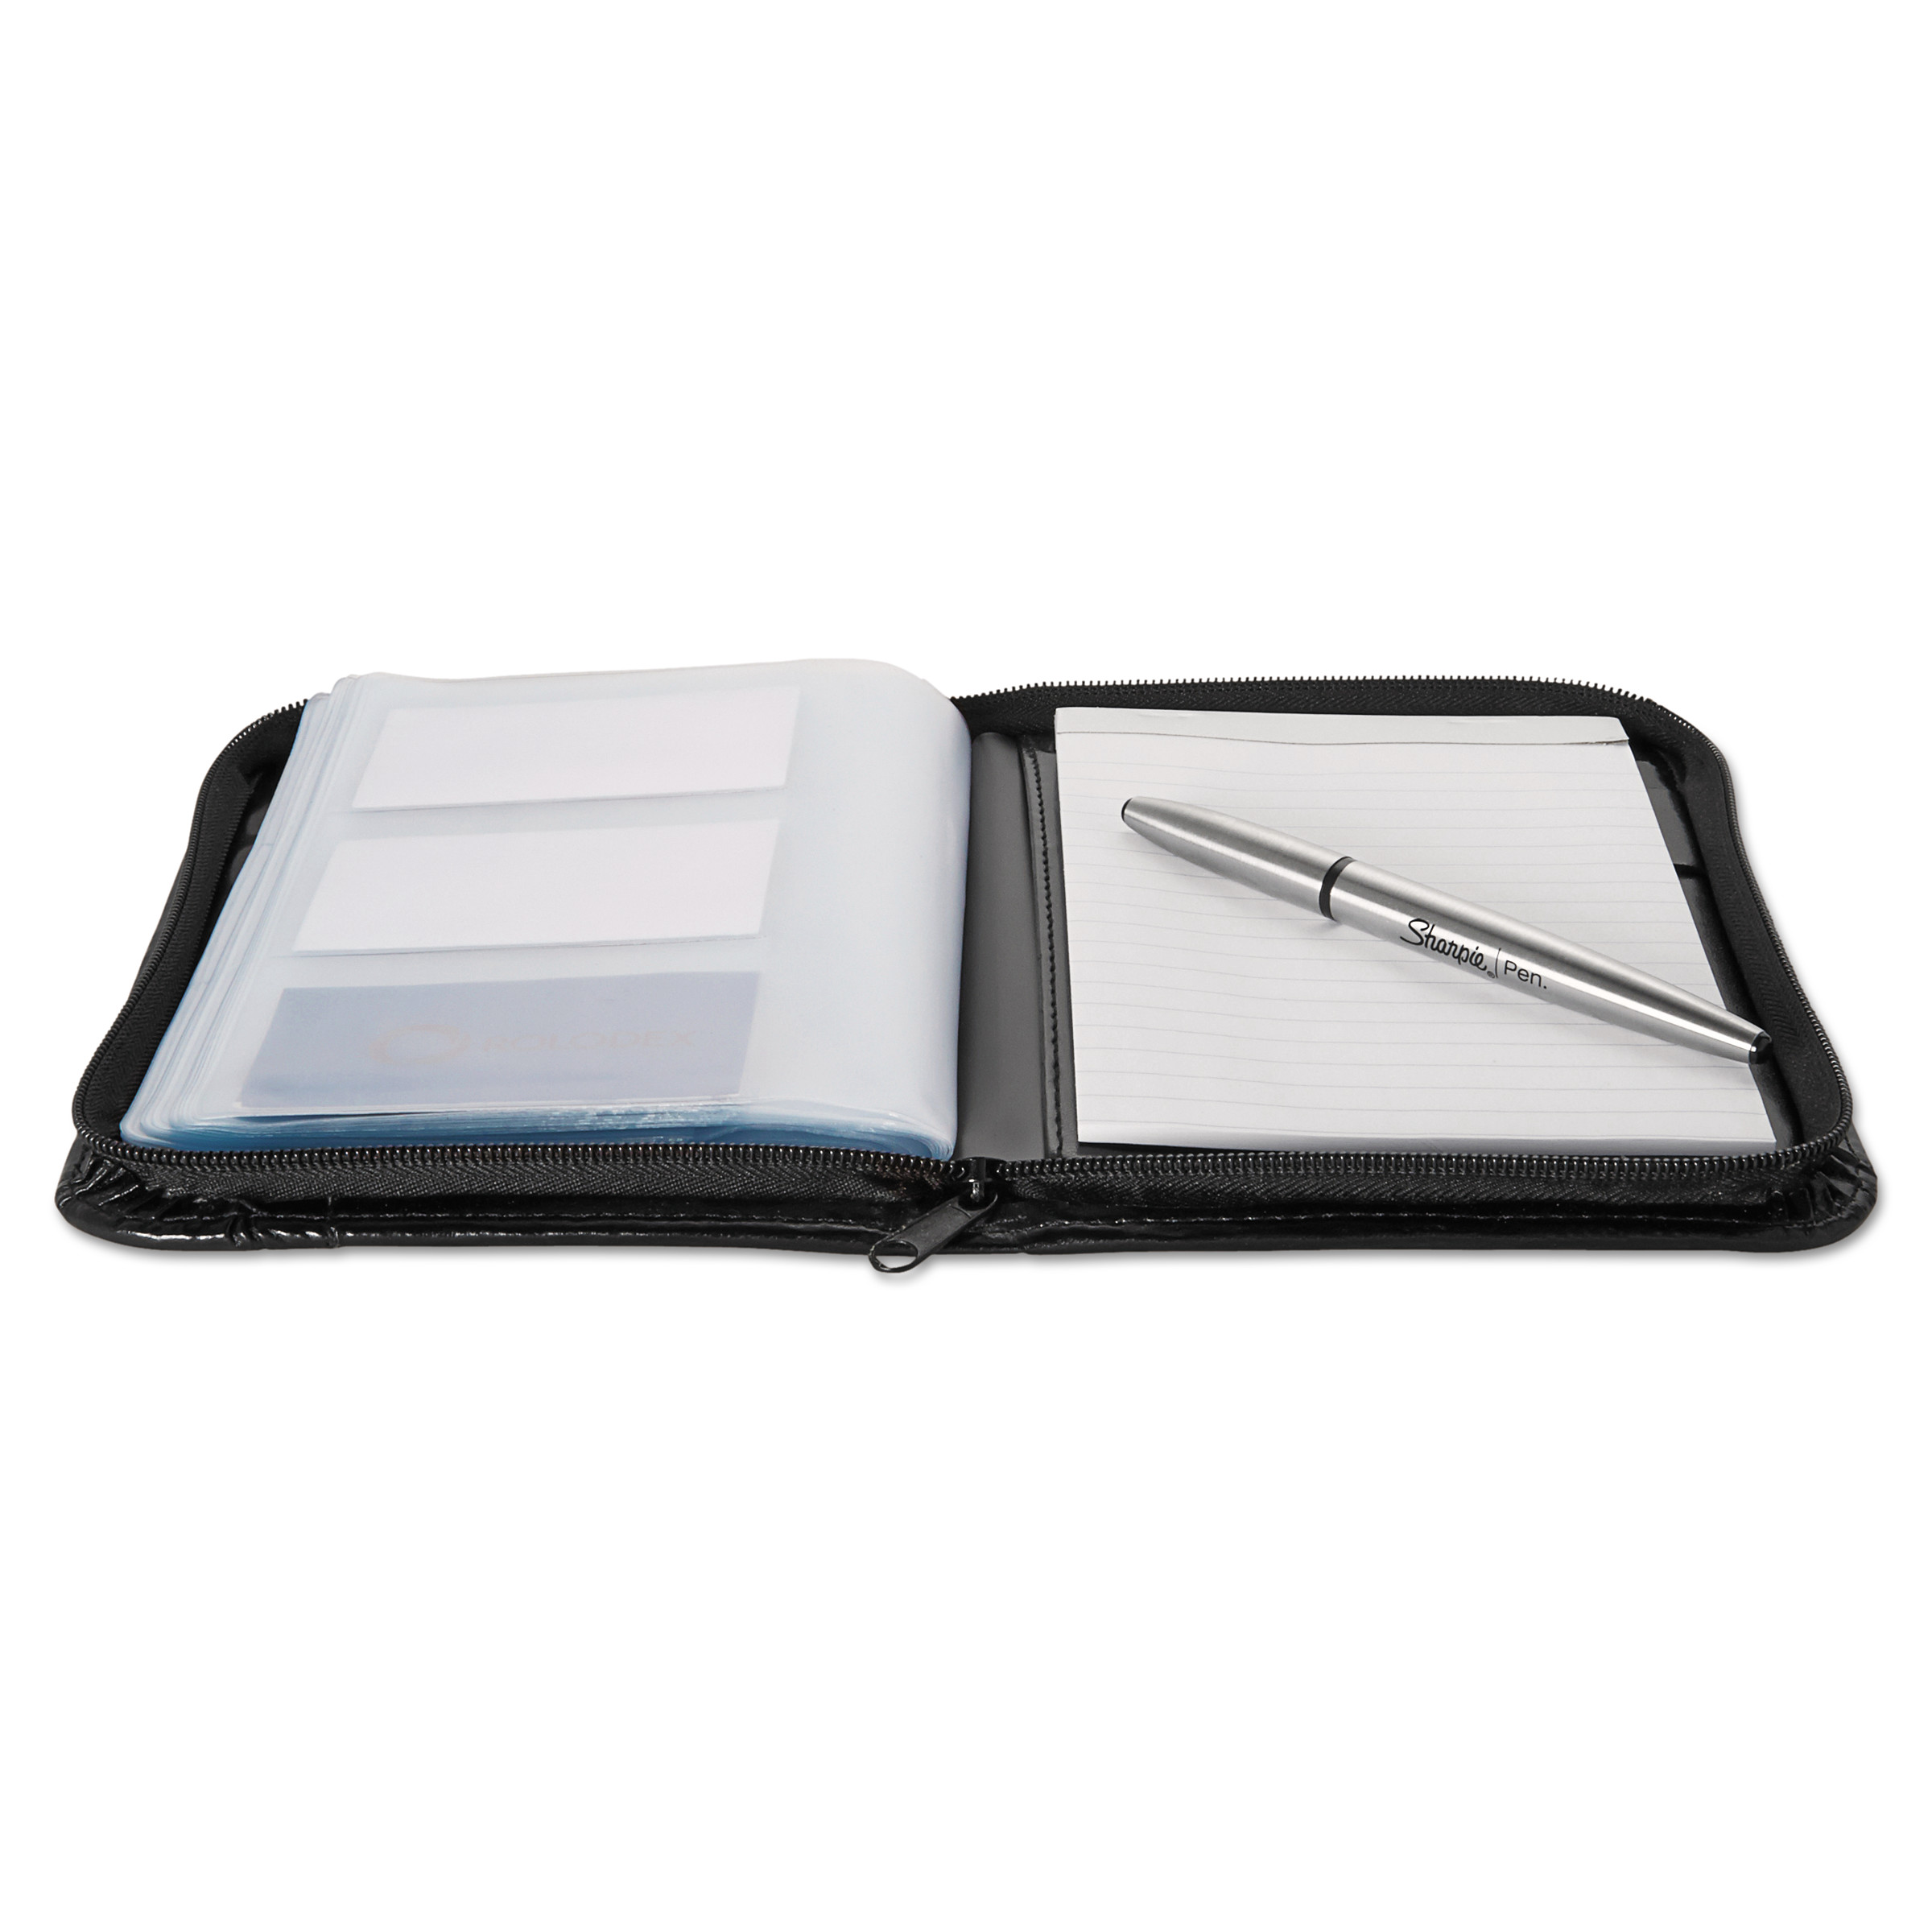 Rolodex faux leather business card book with zipper holds 120 2 1 rolodex faux leather business card book with zipper holds 120 2 14 x 4 cards black walmart magicingreecefo Image collections